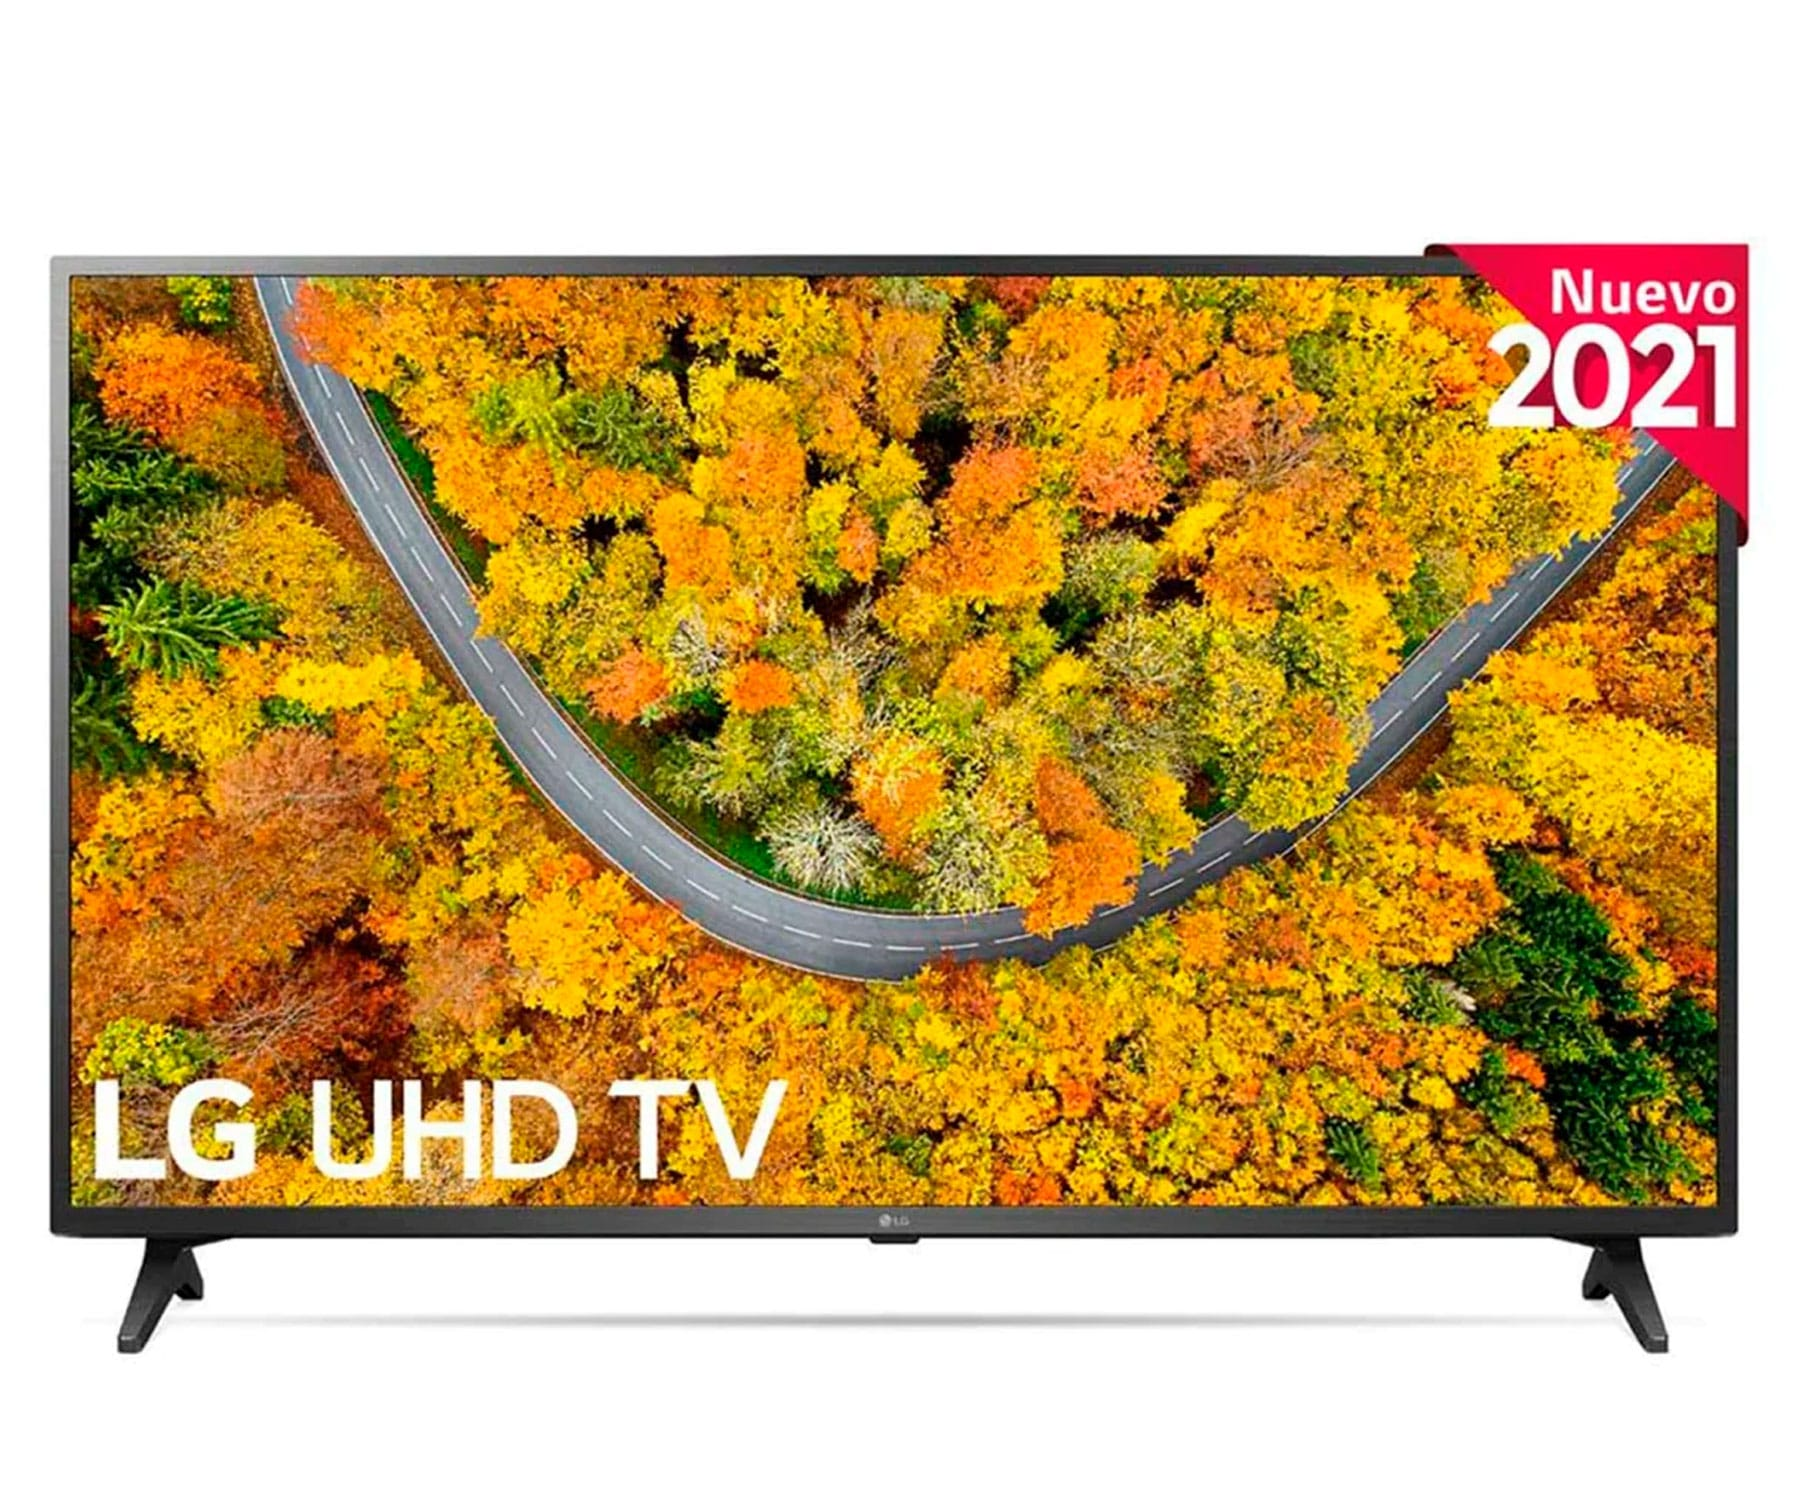 LG 75UP75006LC TELEVISOR 75'' LED UHD 4K SMART TV WEBOS 6.0 4K QUAD CORE WIFI HDMI BLUETOOTH